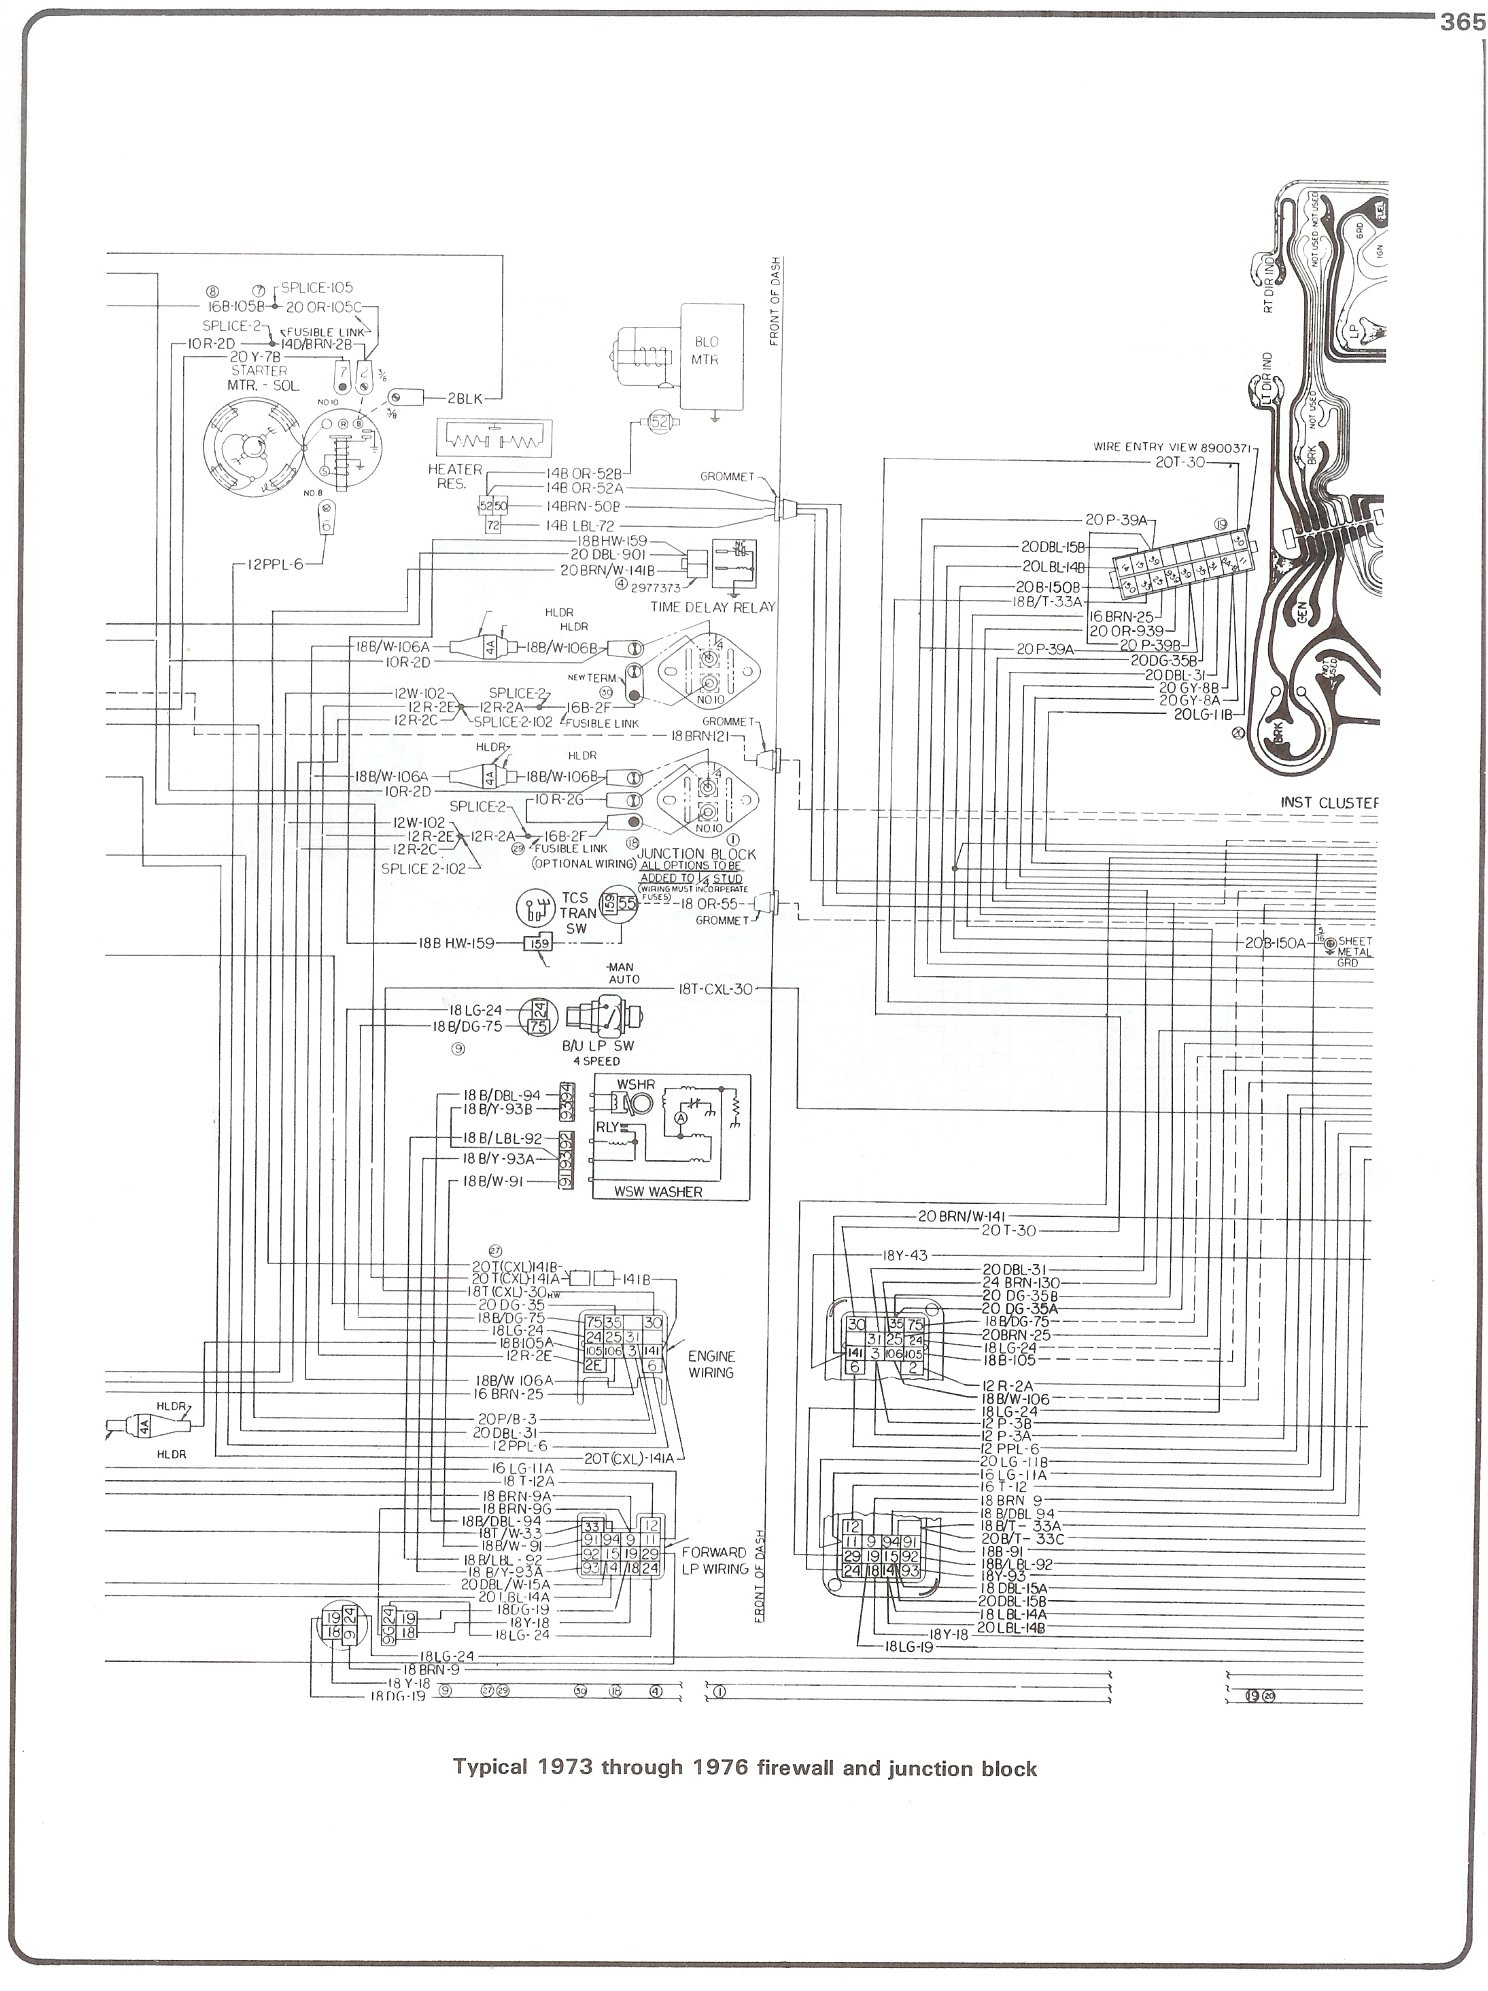 73 76_firewall_junct complete 73 87 wiring diagrams 1985 chevy truck wiring diagram free at honlapkeszites.co